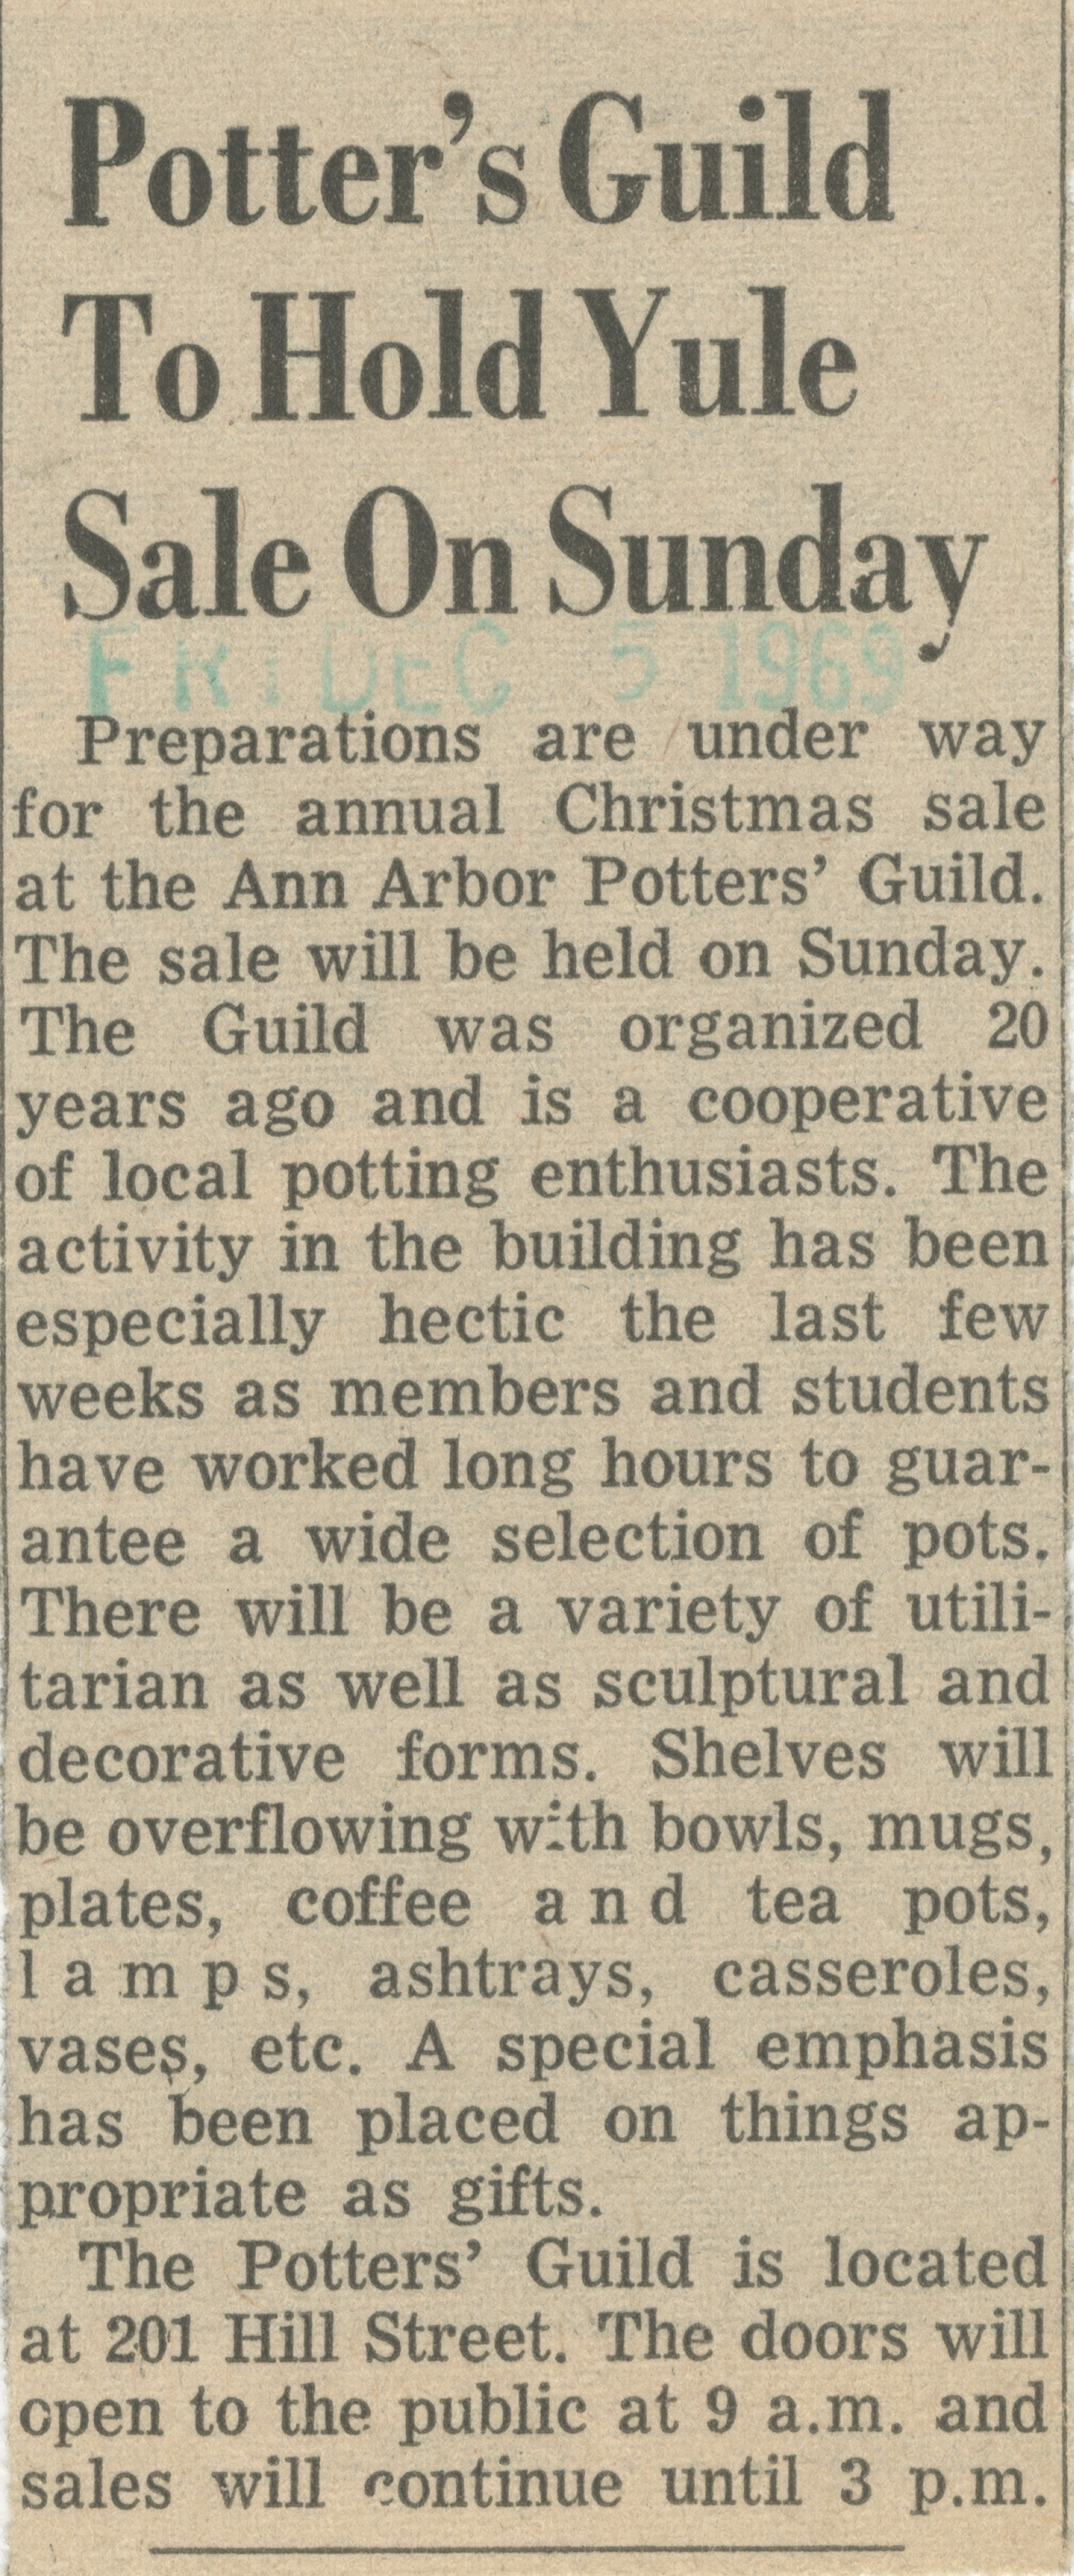 Potter's Guild To Hold Yule Sale On Sunday image